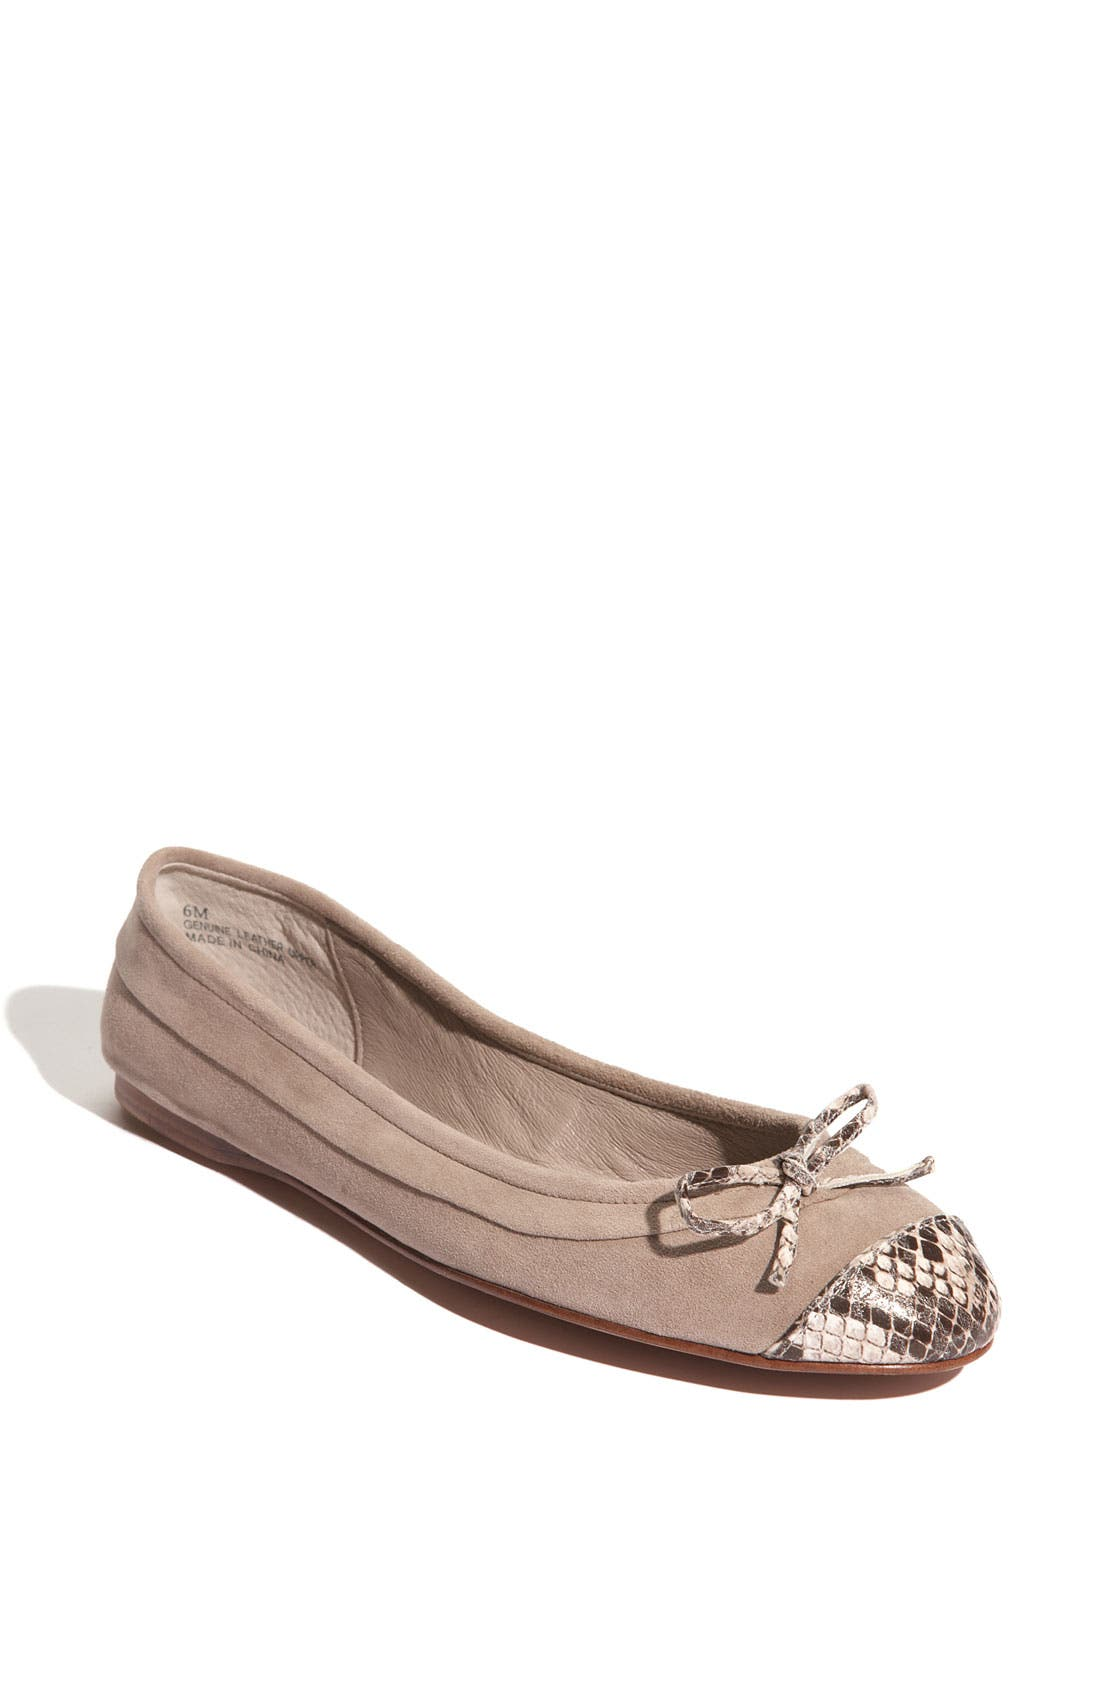 Alternate Image 1 Selected - Classiques Entier® 'Kenna' Ballet Flat